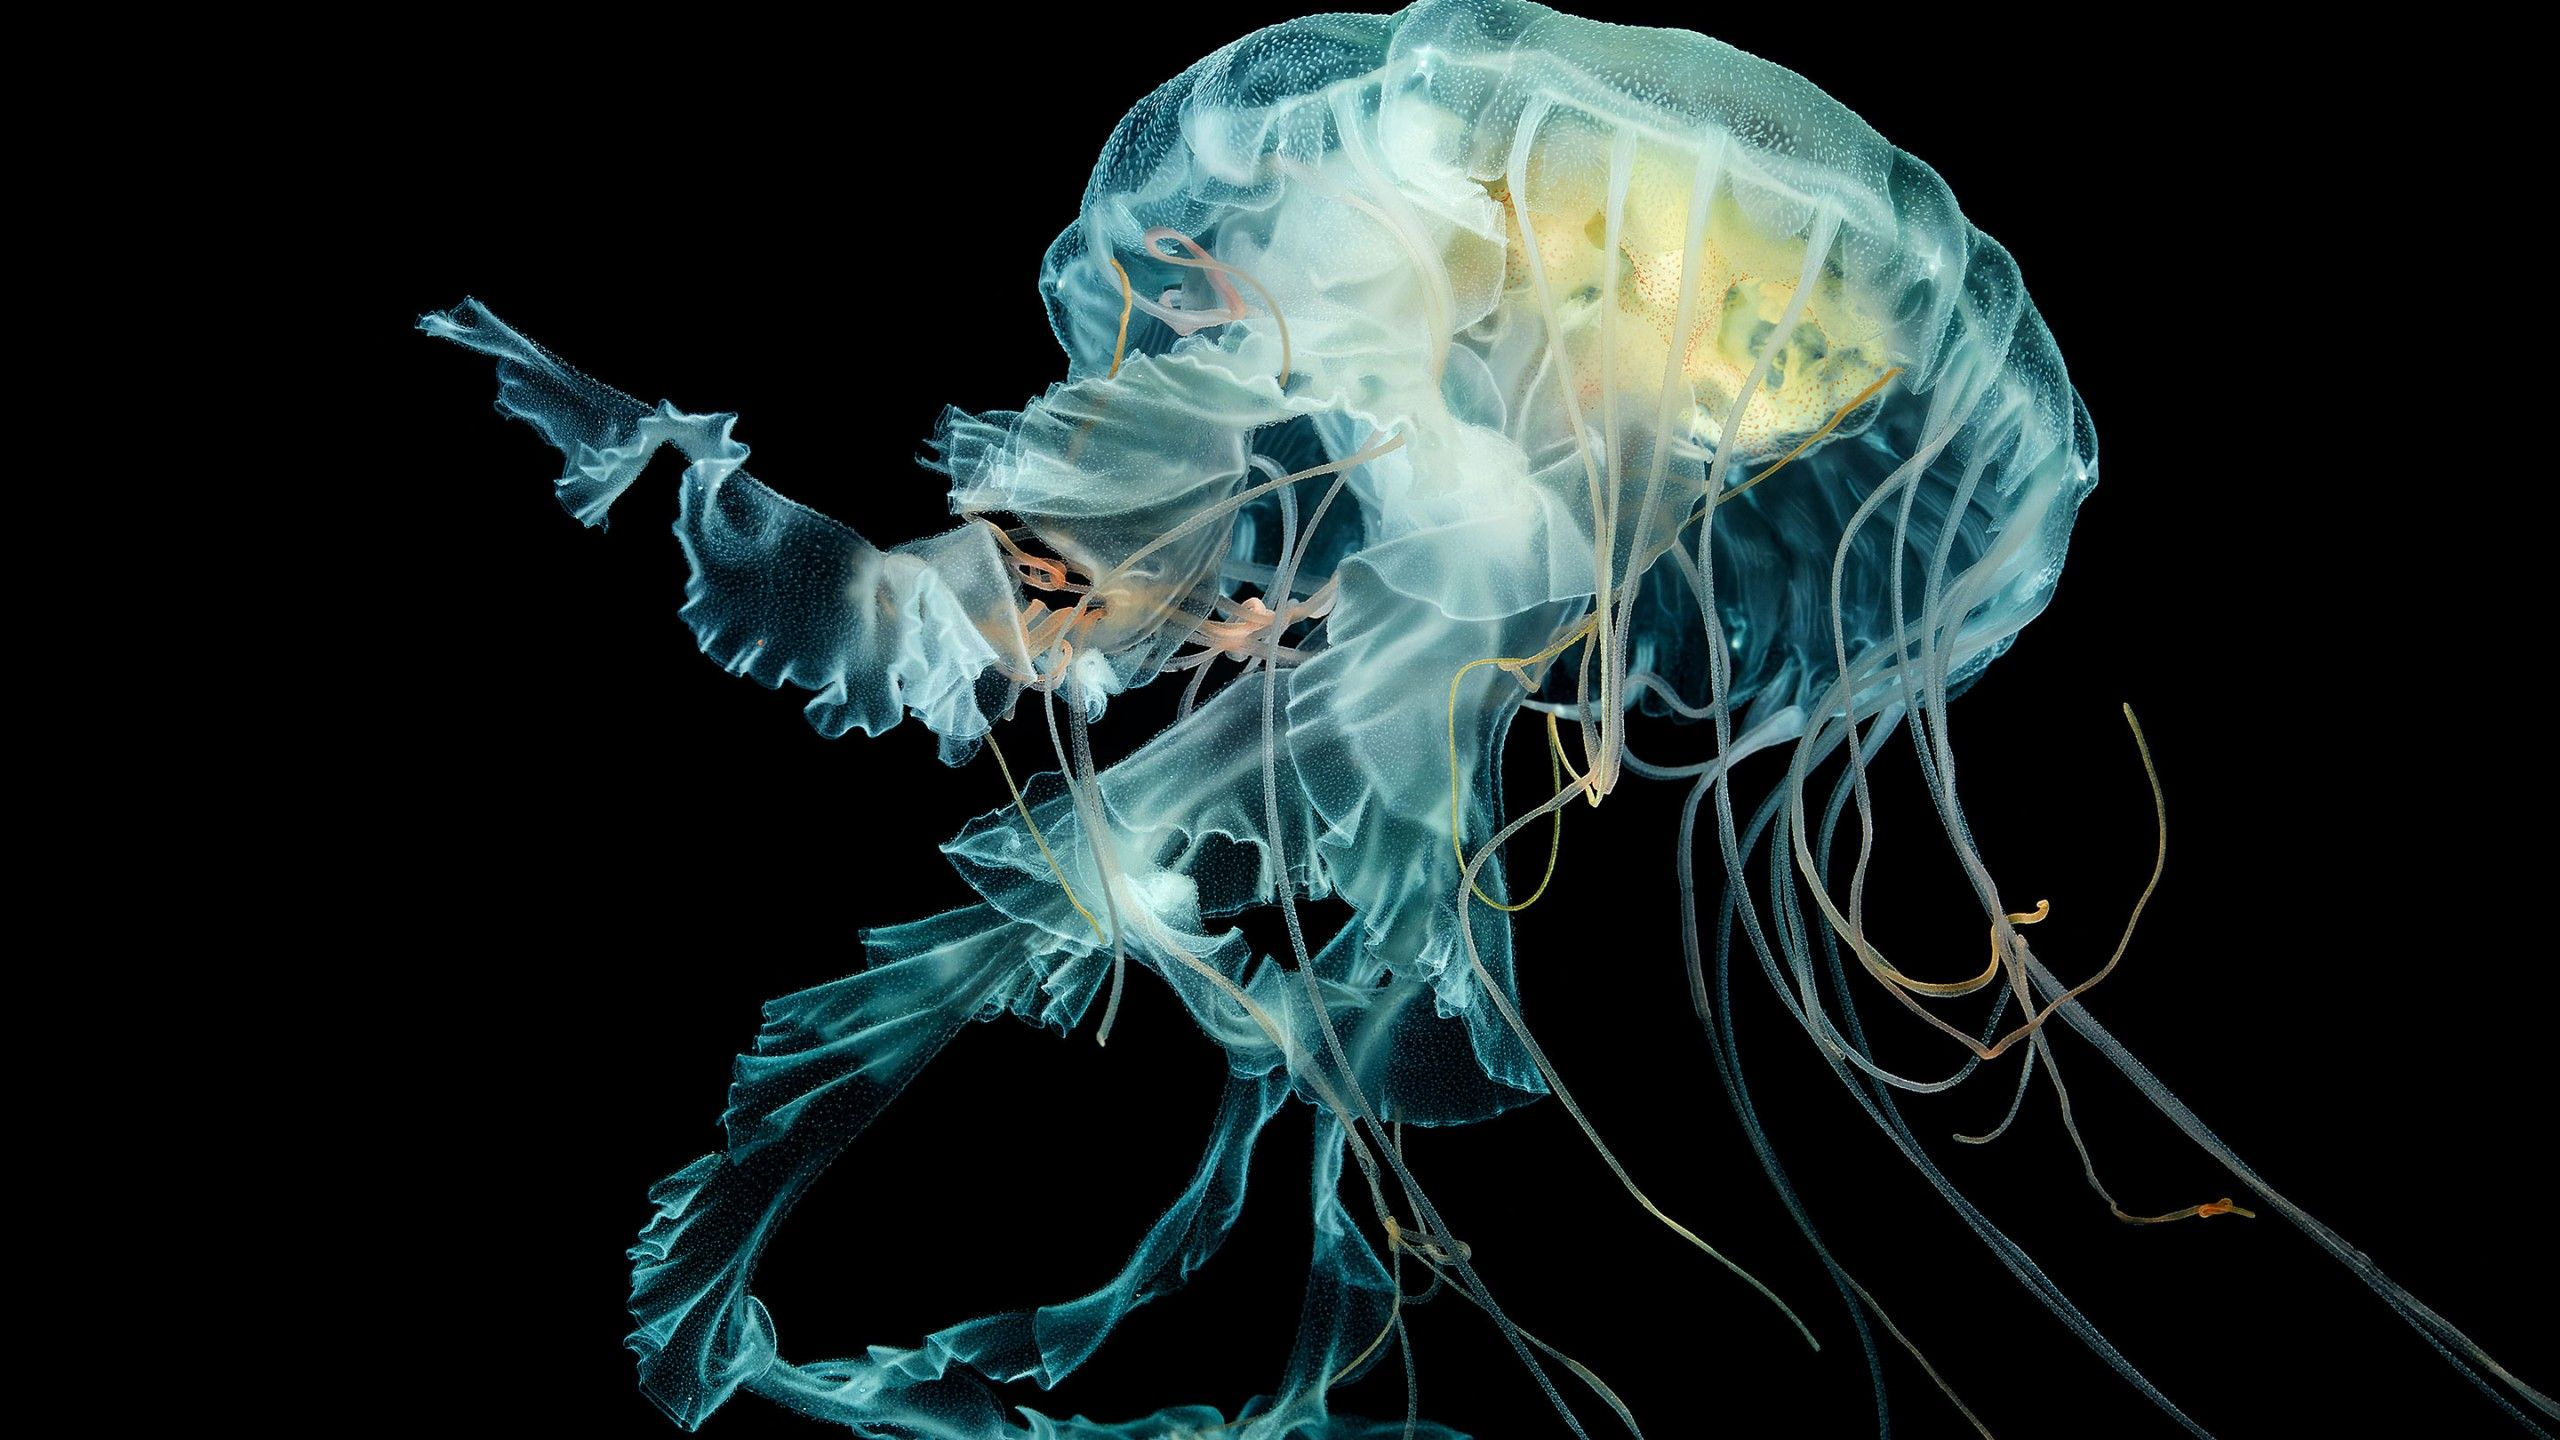 a picture of a jelly fish